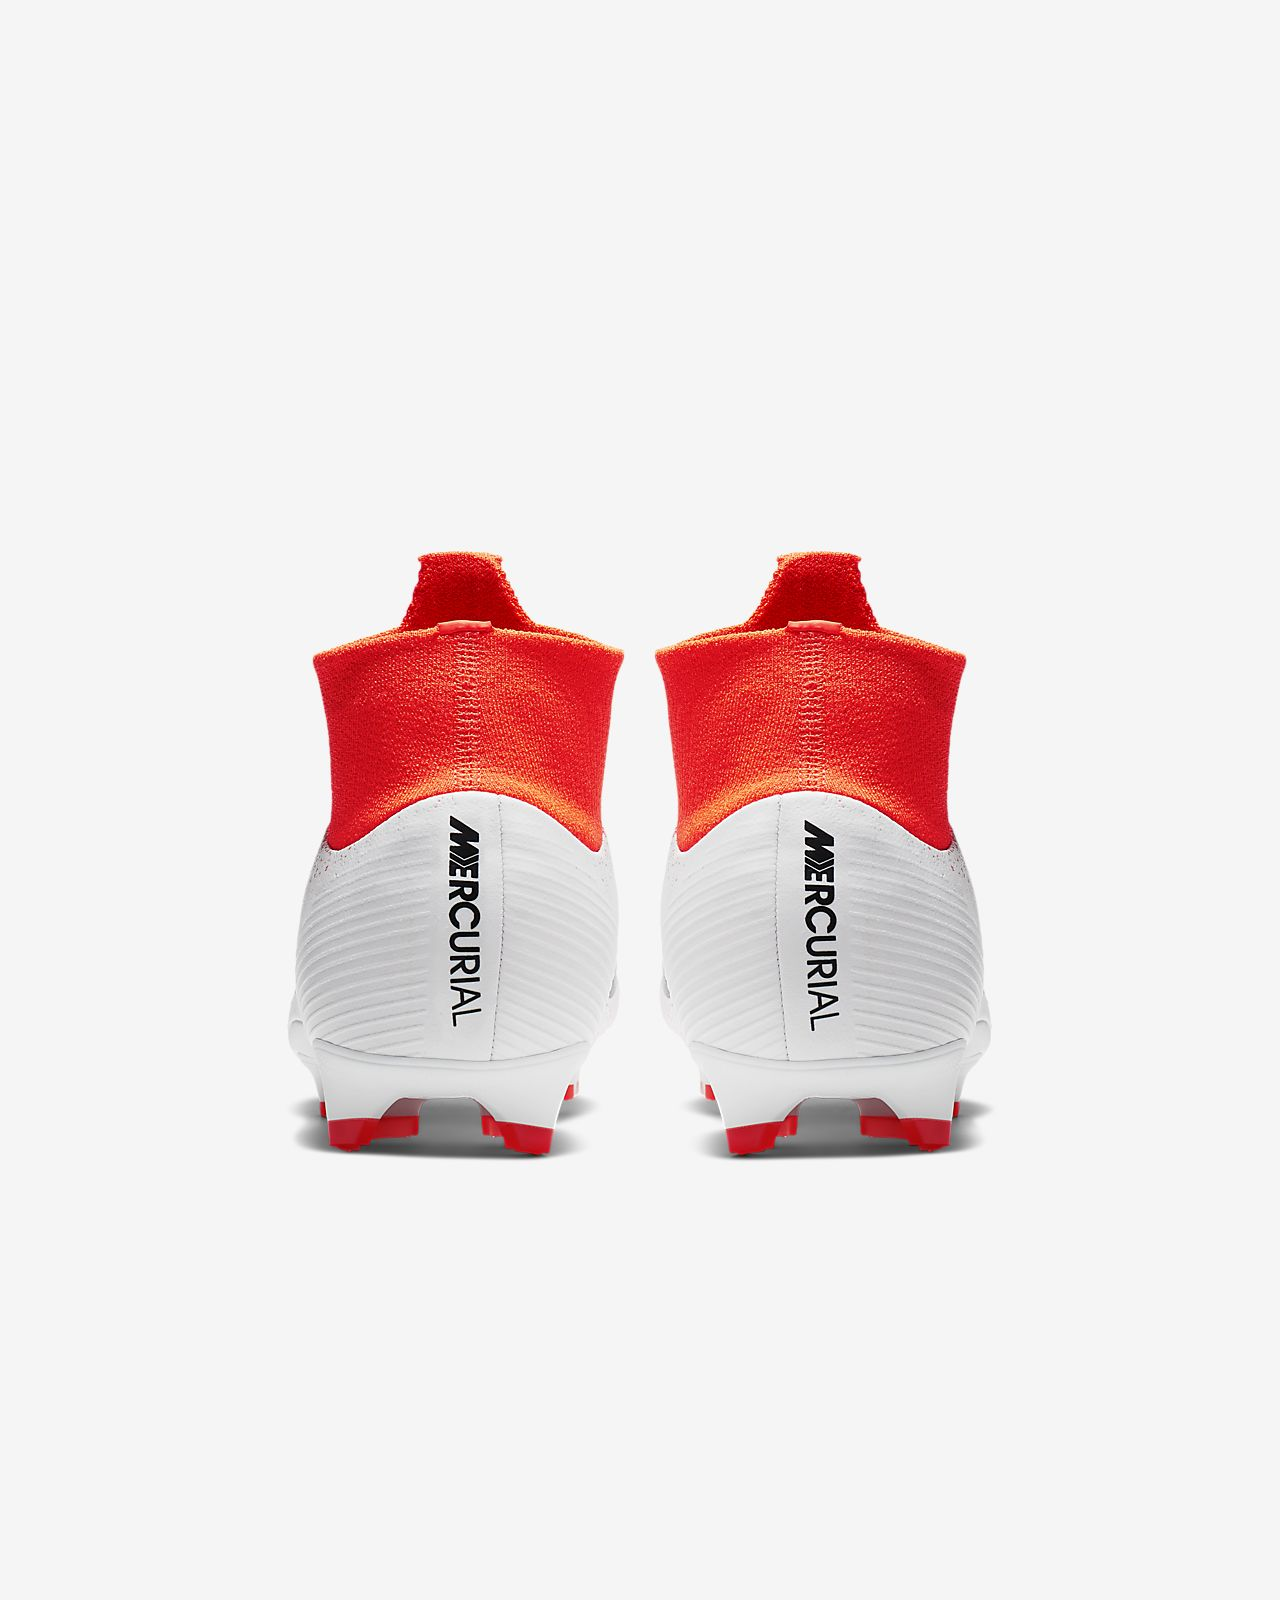 reputable site 1b9d6 738ce ... Nike Superfly 6 Pro FG Firm-Ground Soccer Cleat